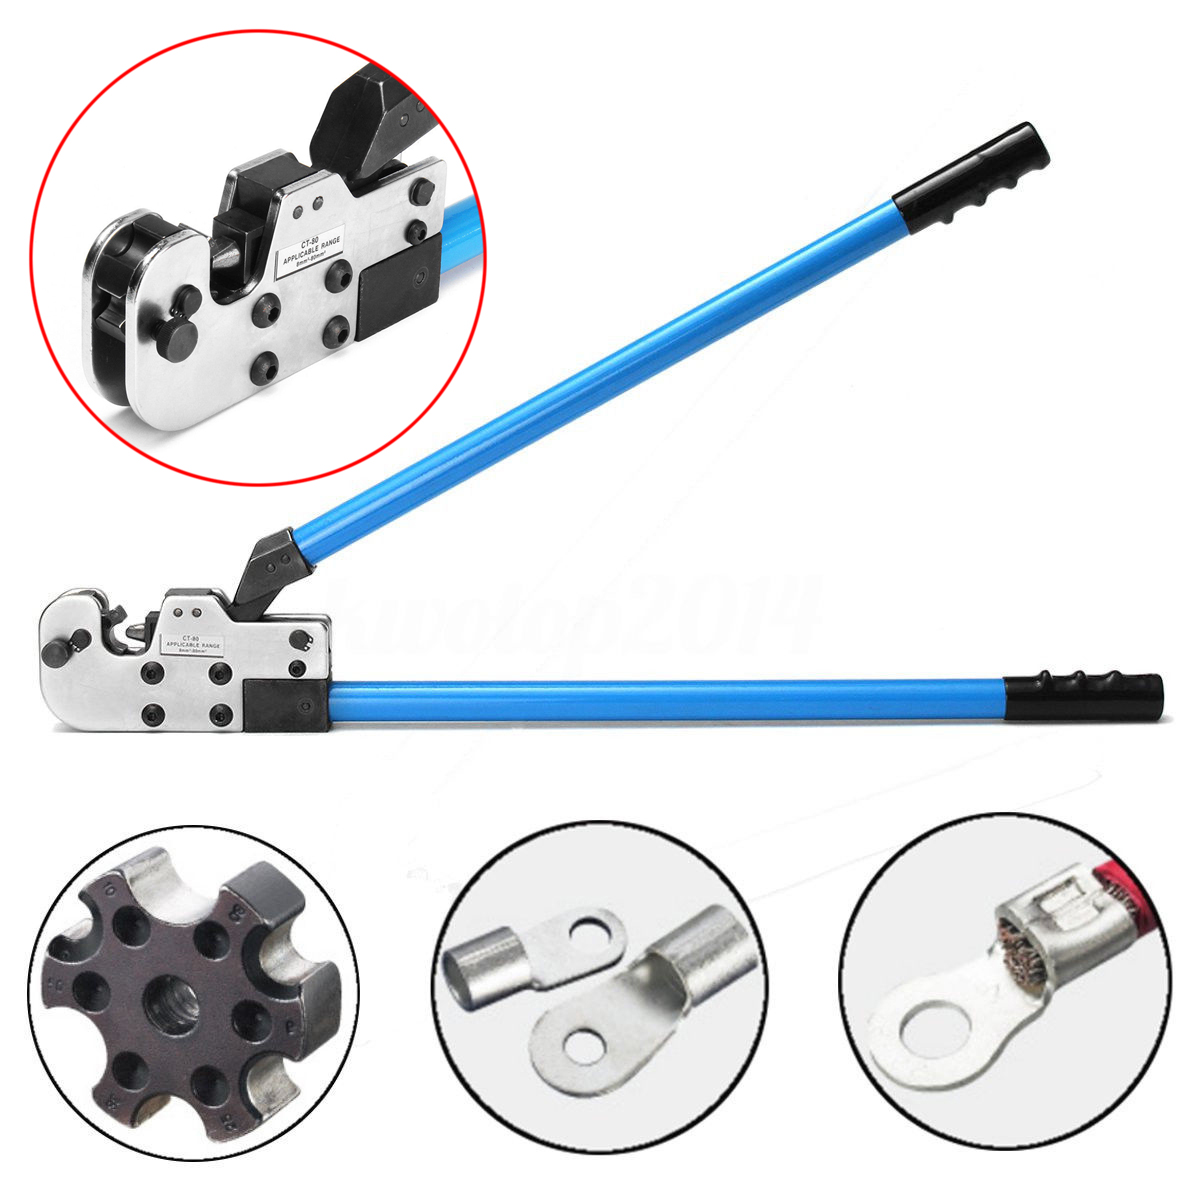 DWZ Adjustable 8-95mm Wire Terminal Crimper Tool Cable Lug Crimping Plier AWG 8-3/0 цена